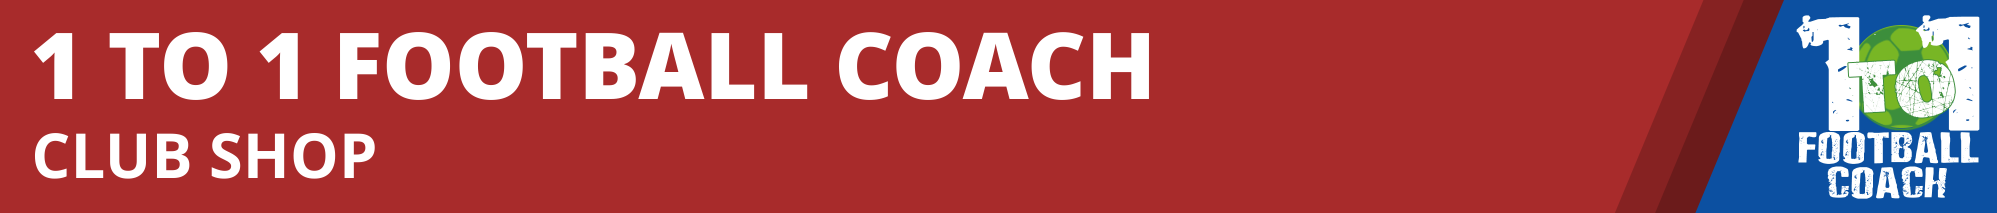 1-to-1-football-coach-club-shop-banner.png